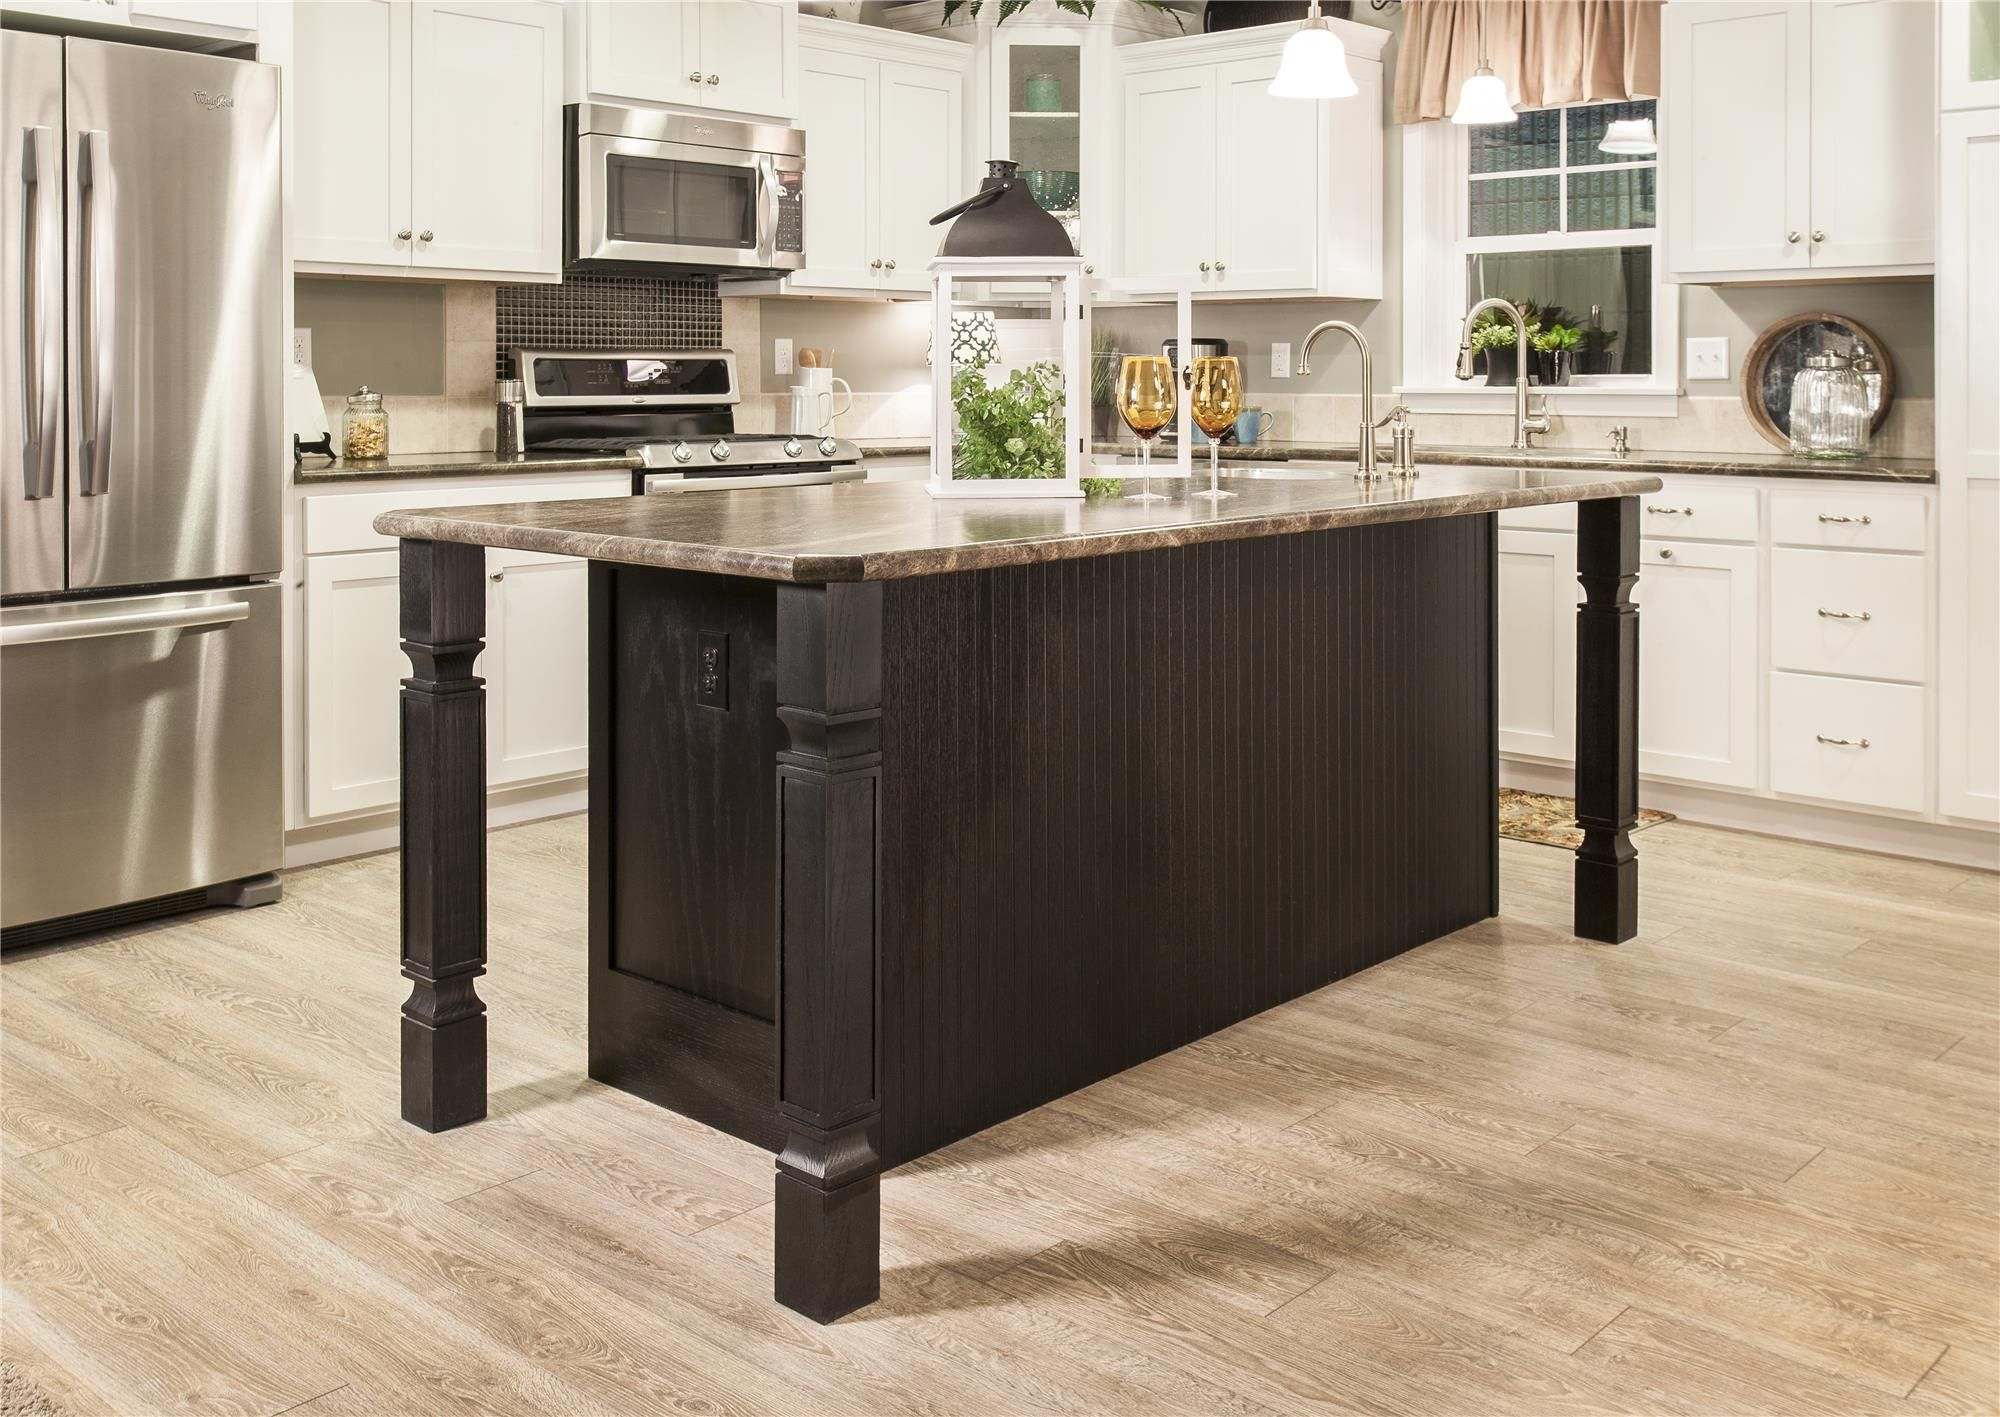 Legacy Crafted Cabinets Kcma Certified Cabinets Kitchen Cabinet Inspiration Kitchen Modular Modular Home Manufacturers